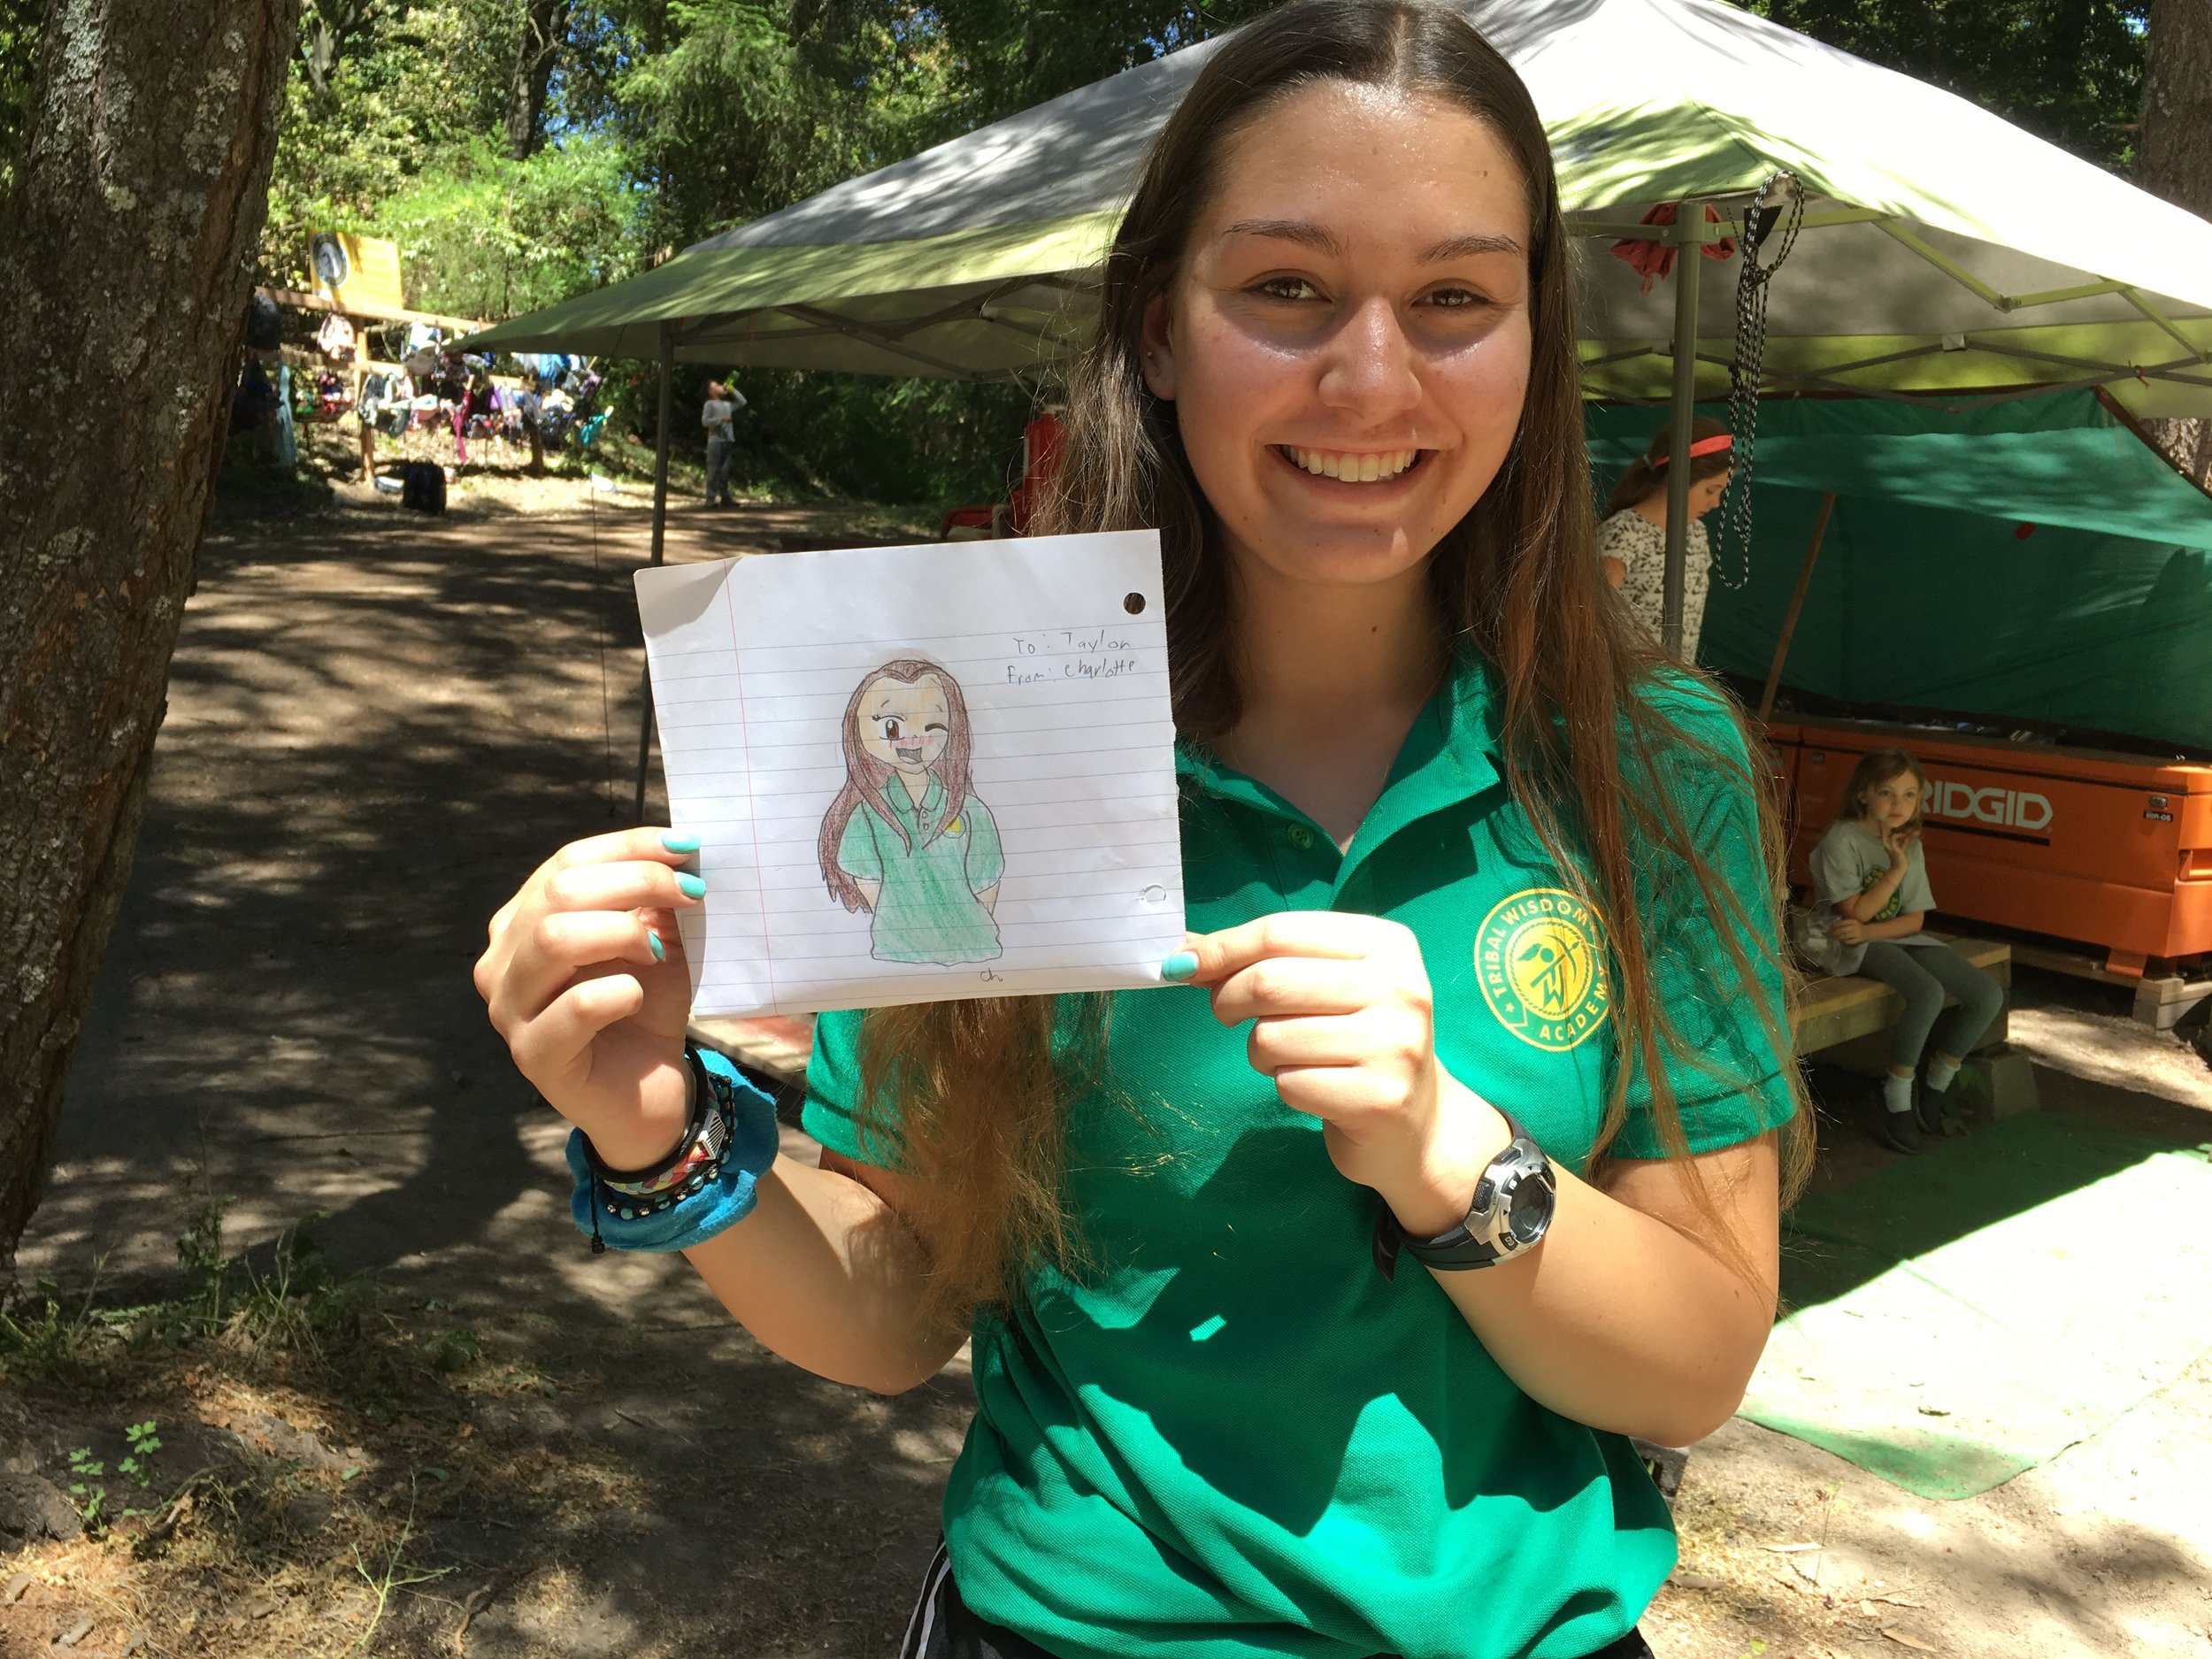 Mentor Taylor Avoy grew up in the Santa Cruz Mountains, she is now working on her degree in public health at the University of Nevada Reno. Taylor loves to bring her hometown children back to nature. She is looking forward to creating happy summer memories together with your family this summer. -